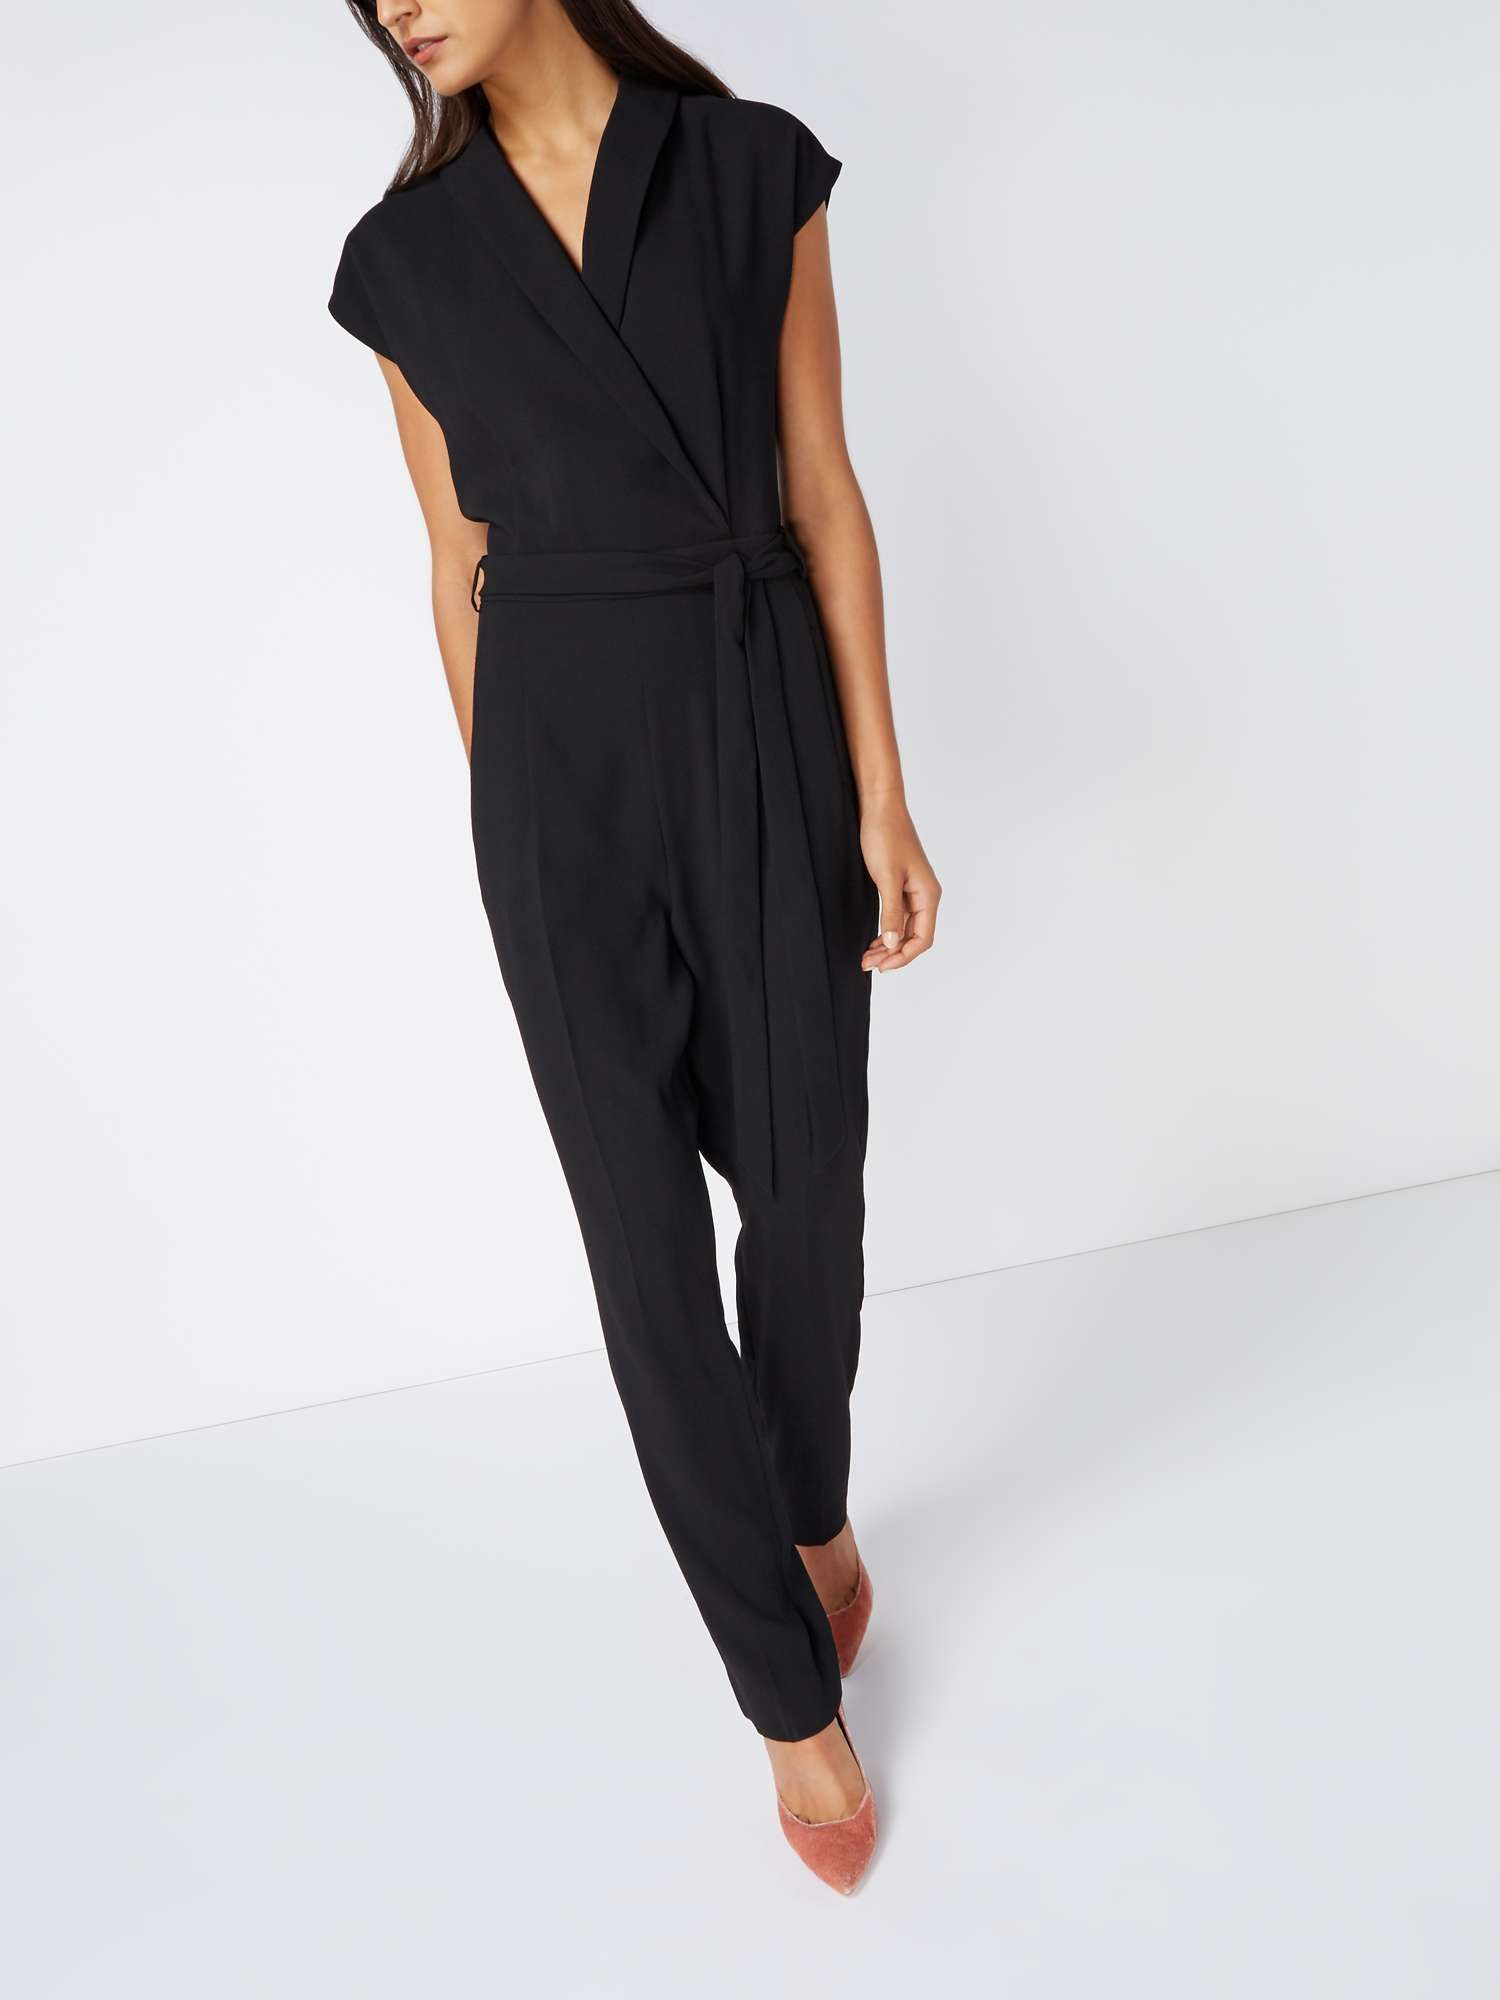 1d007e59273 Buy your Linea Riley Jumpsuit online now at House of Fraser. Why not Buy and